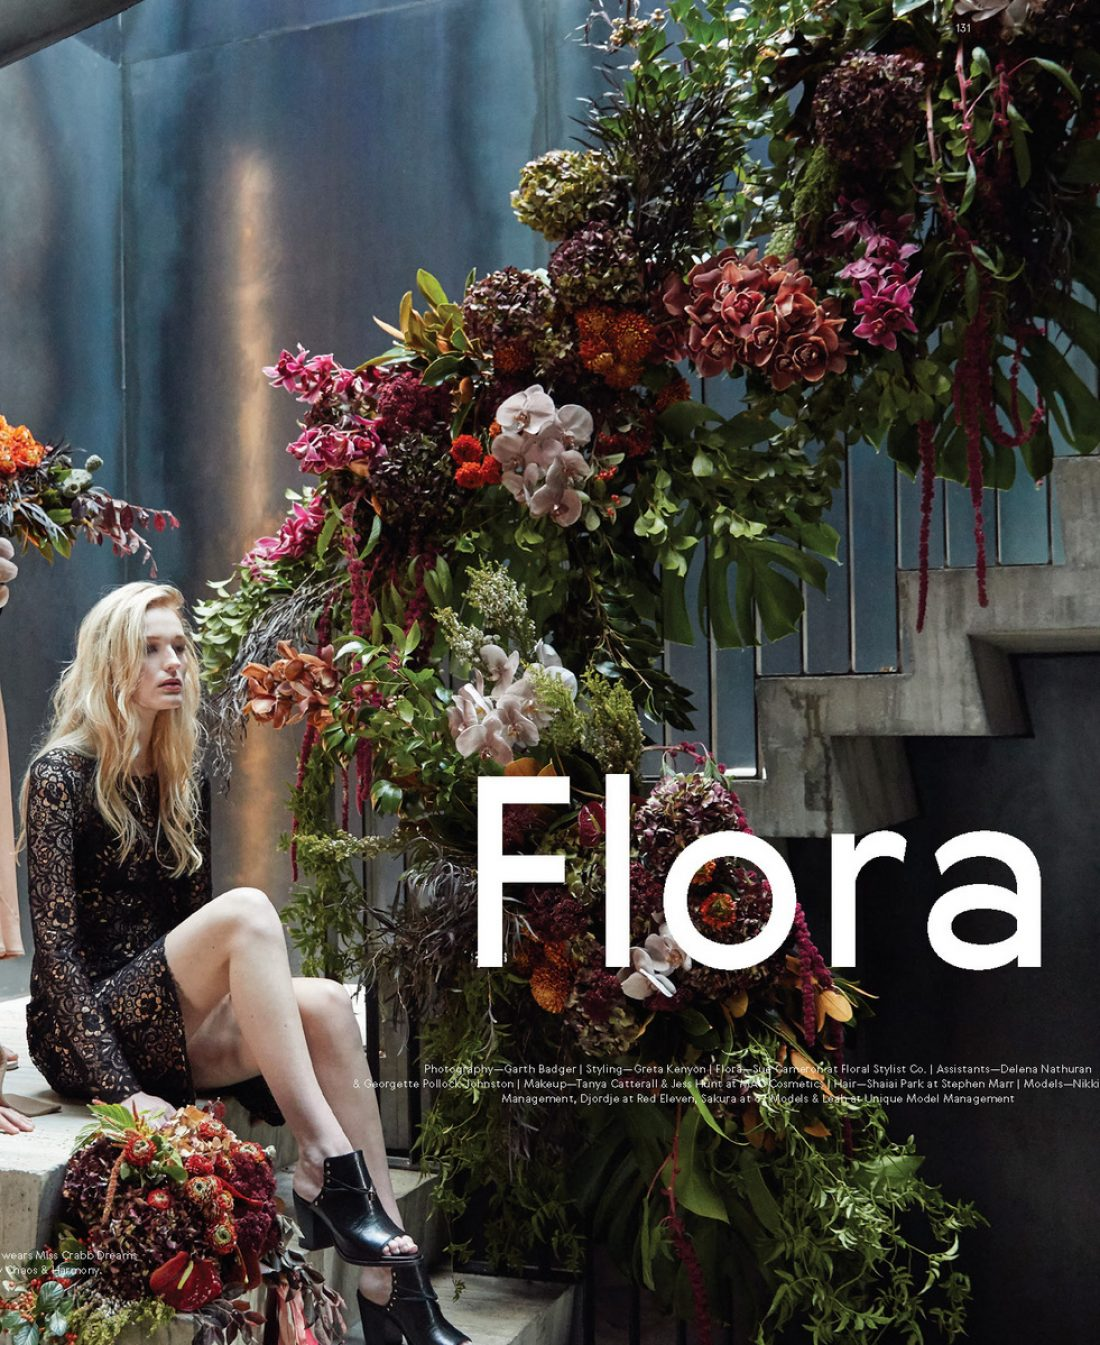 Leah photographed by Garth Badger for Together Journal : Luxe wedding glamour from our Flora Fashion shoot in issue 12 – Styling by @gretanz, Flora @floralstylist, Makeup @maccosmetics, Hair @stephen_marr.  Leah @uniquemodelmanagement wears lace dress by @worldbrandinnz with black mules by @chaosandharmonyshoes